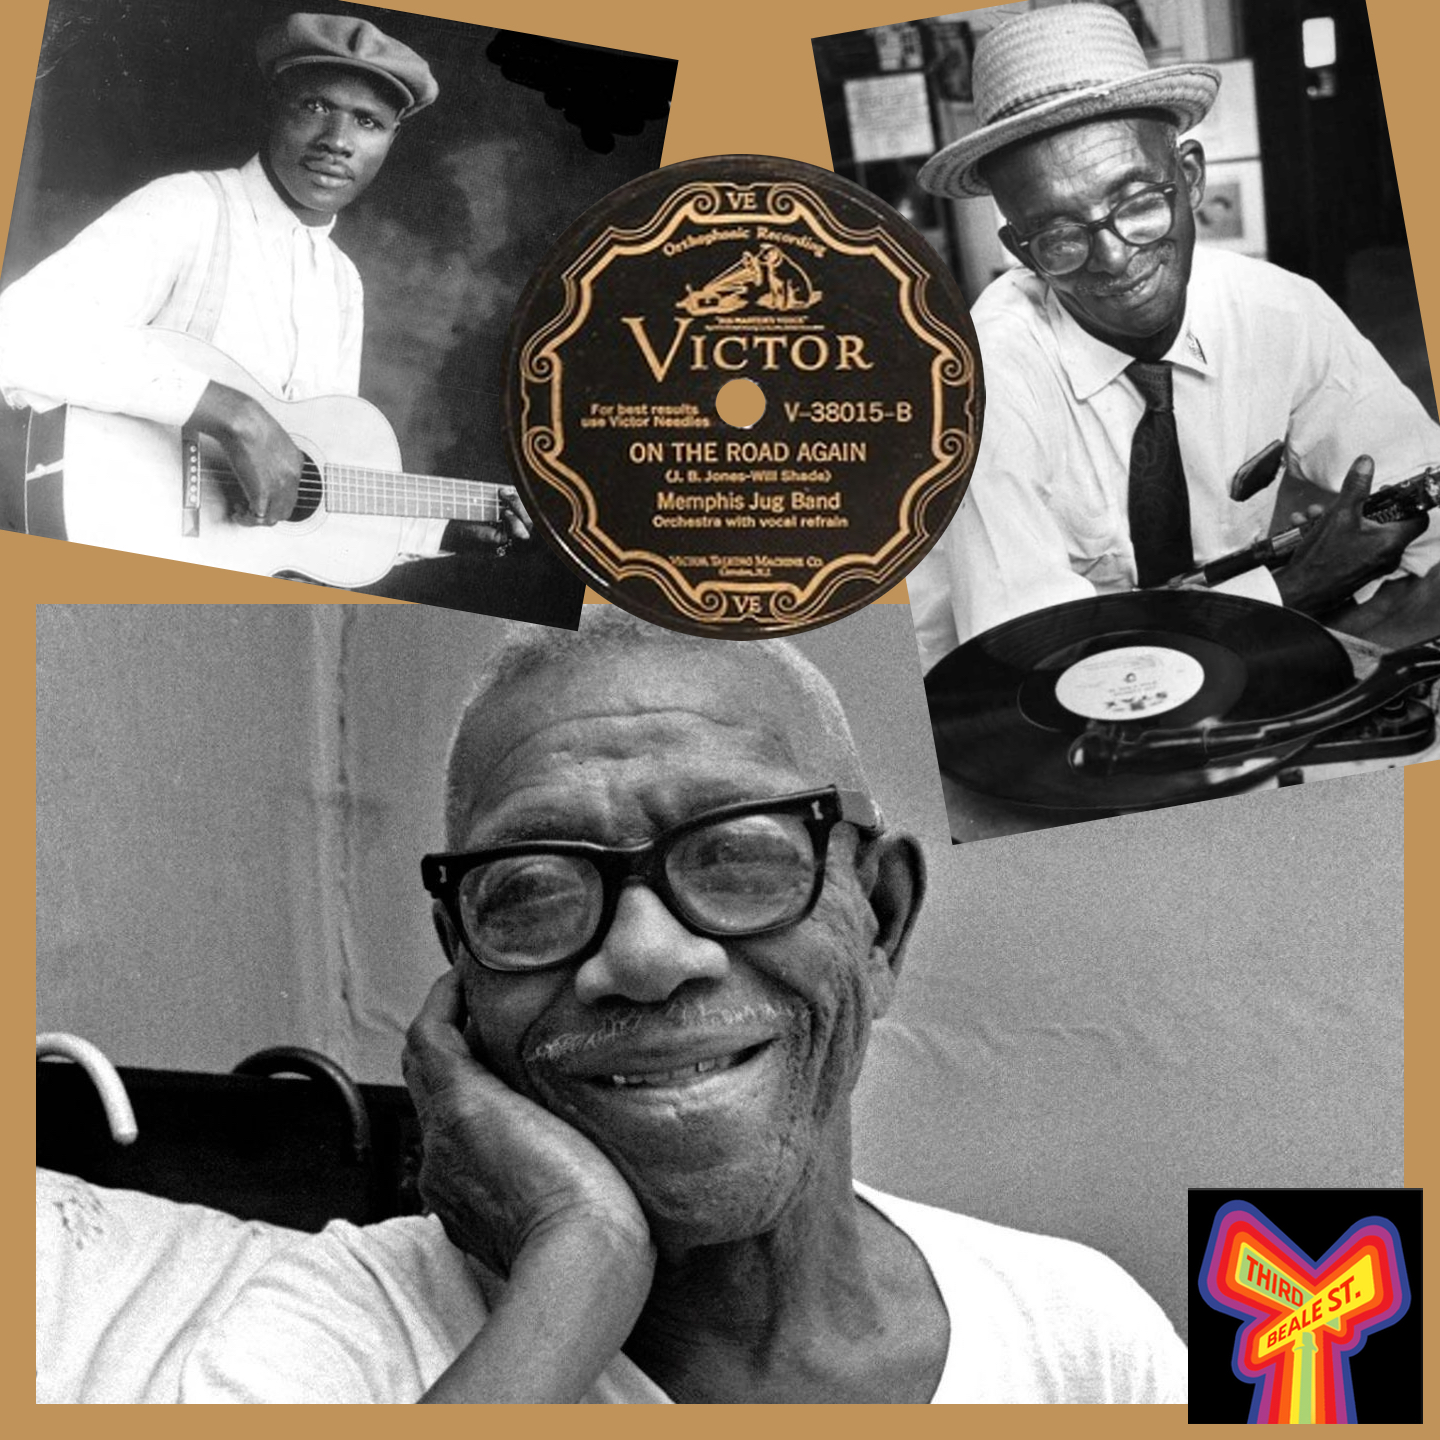 """Caption: Clockwise, from top left: Frank Stokes, also referred to as """"Creator of the Memphis Blues;"""" Gus Cannon listens to his Stax LP (photo by Bob Williams); Furry Lewis, 1976 (photo by Barney Sellers)."""